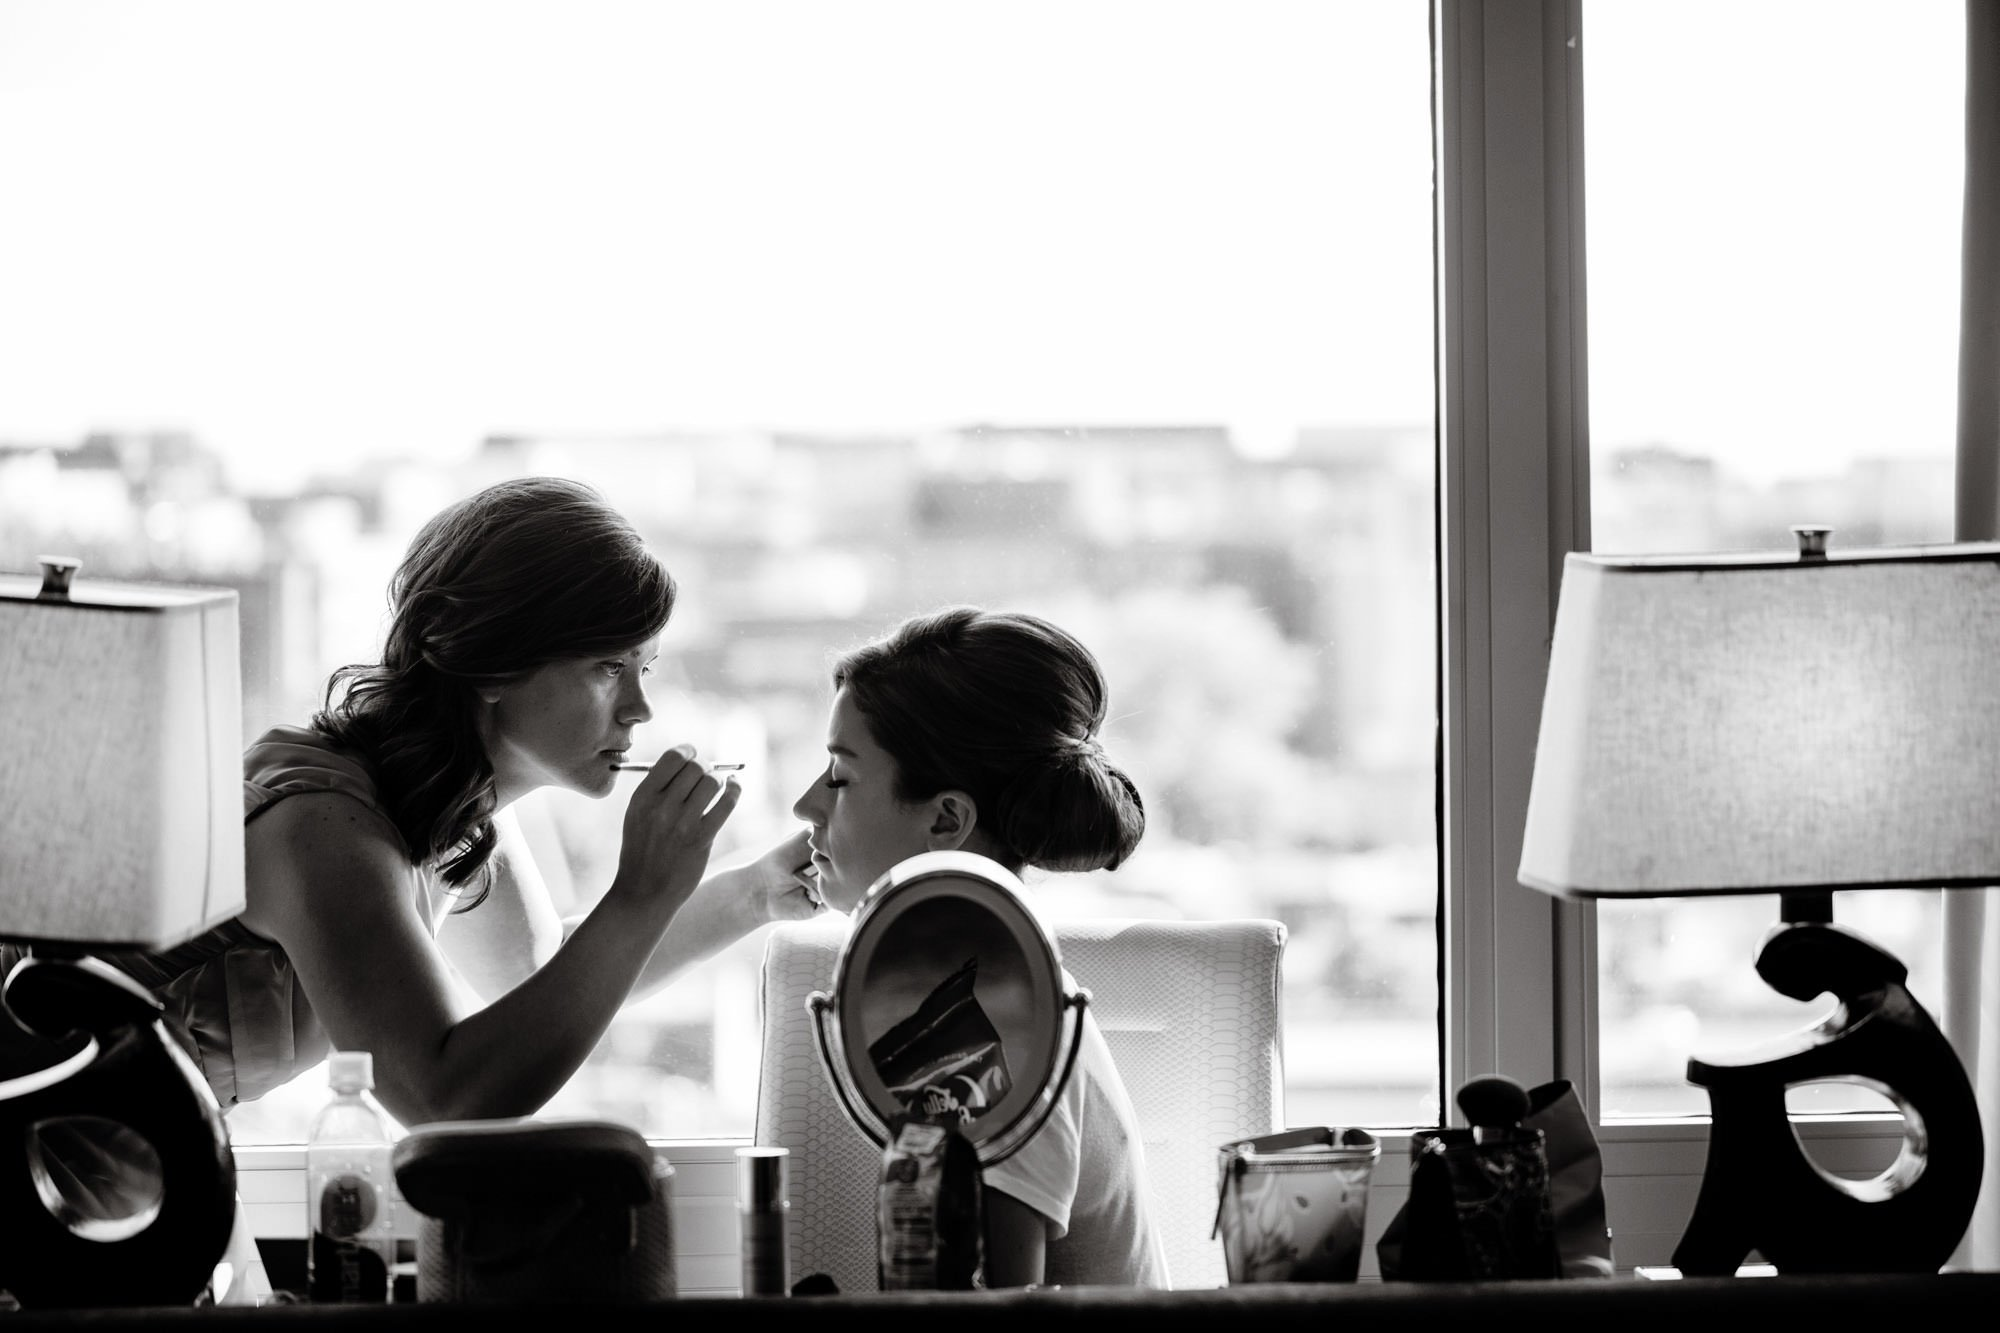 The bride gets her makeup done with help from her bridesmaid.